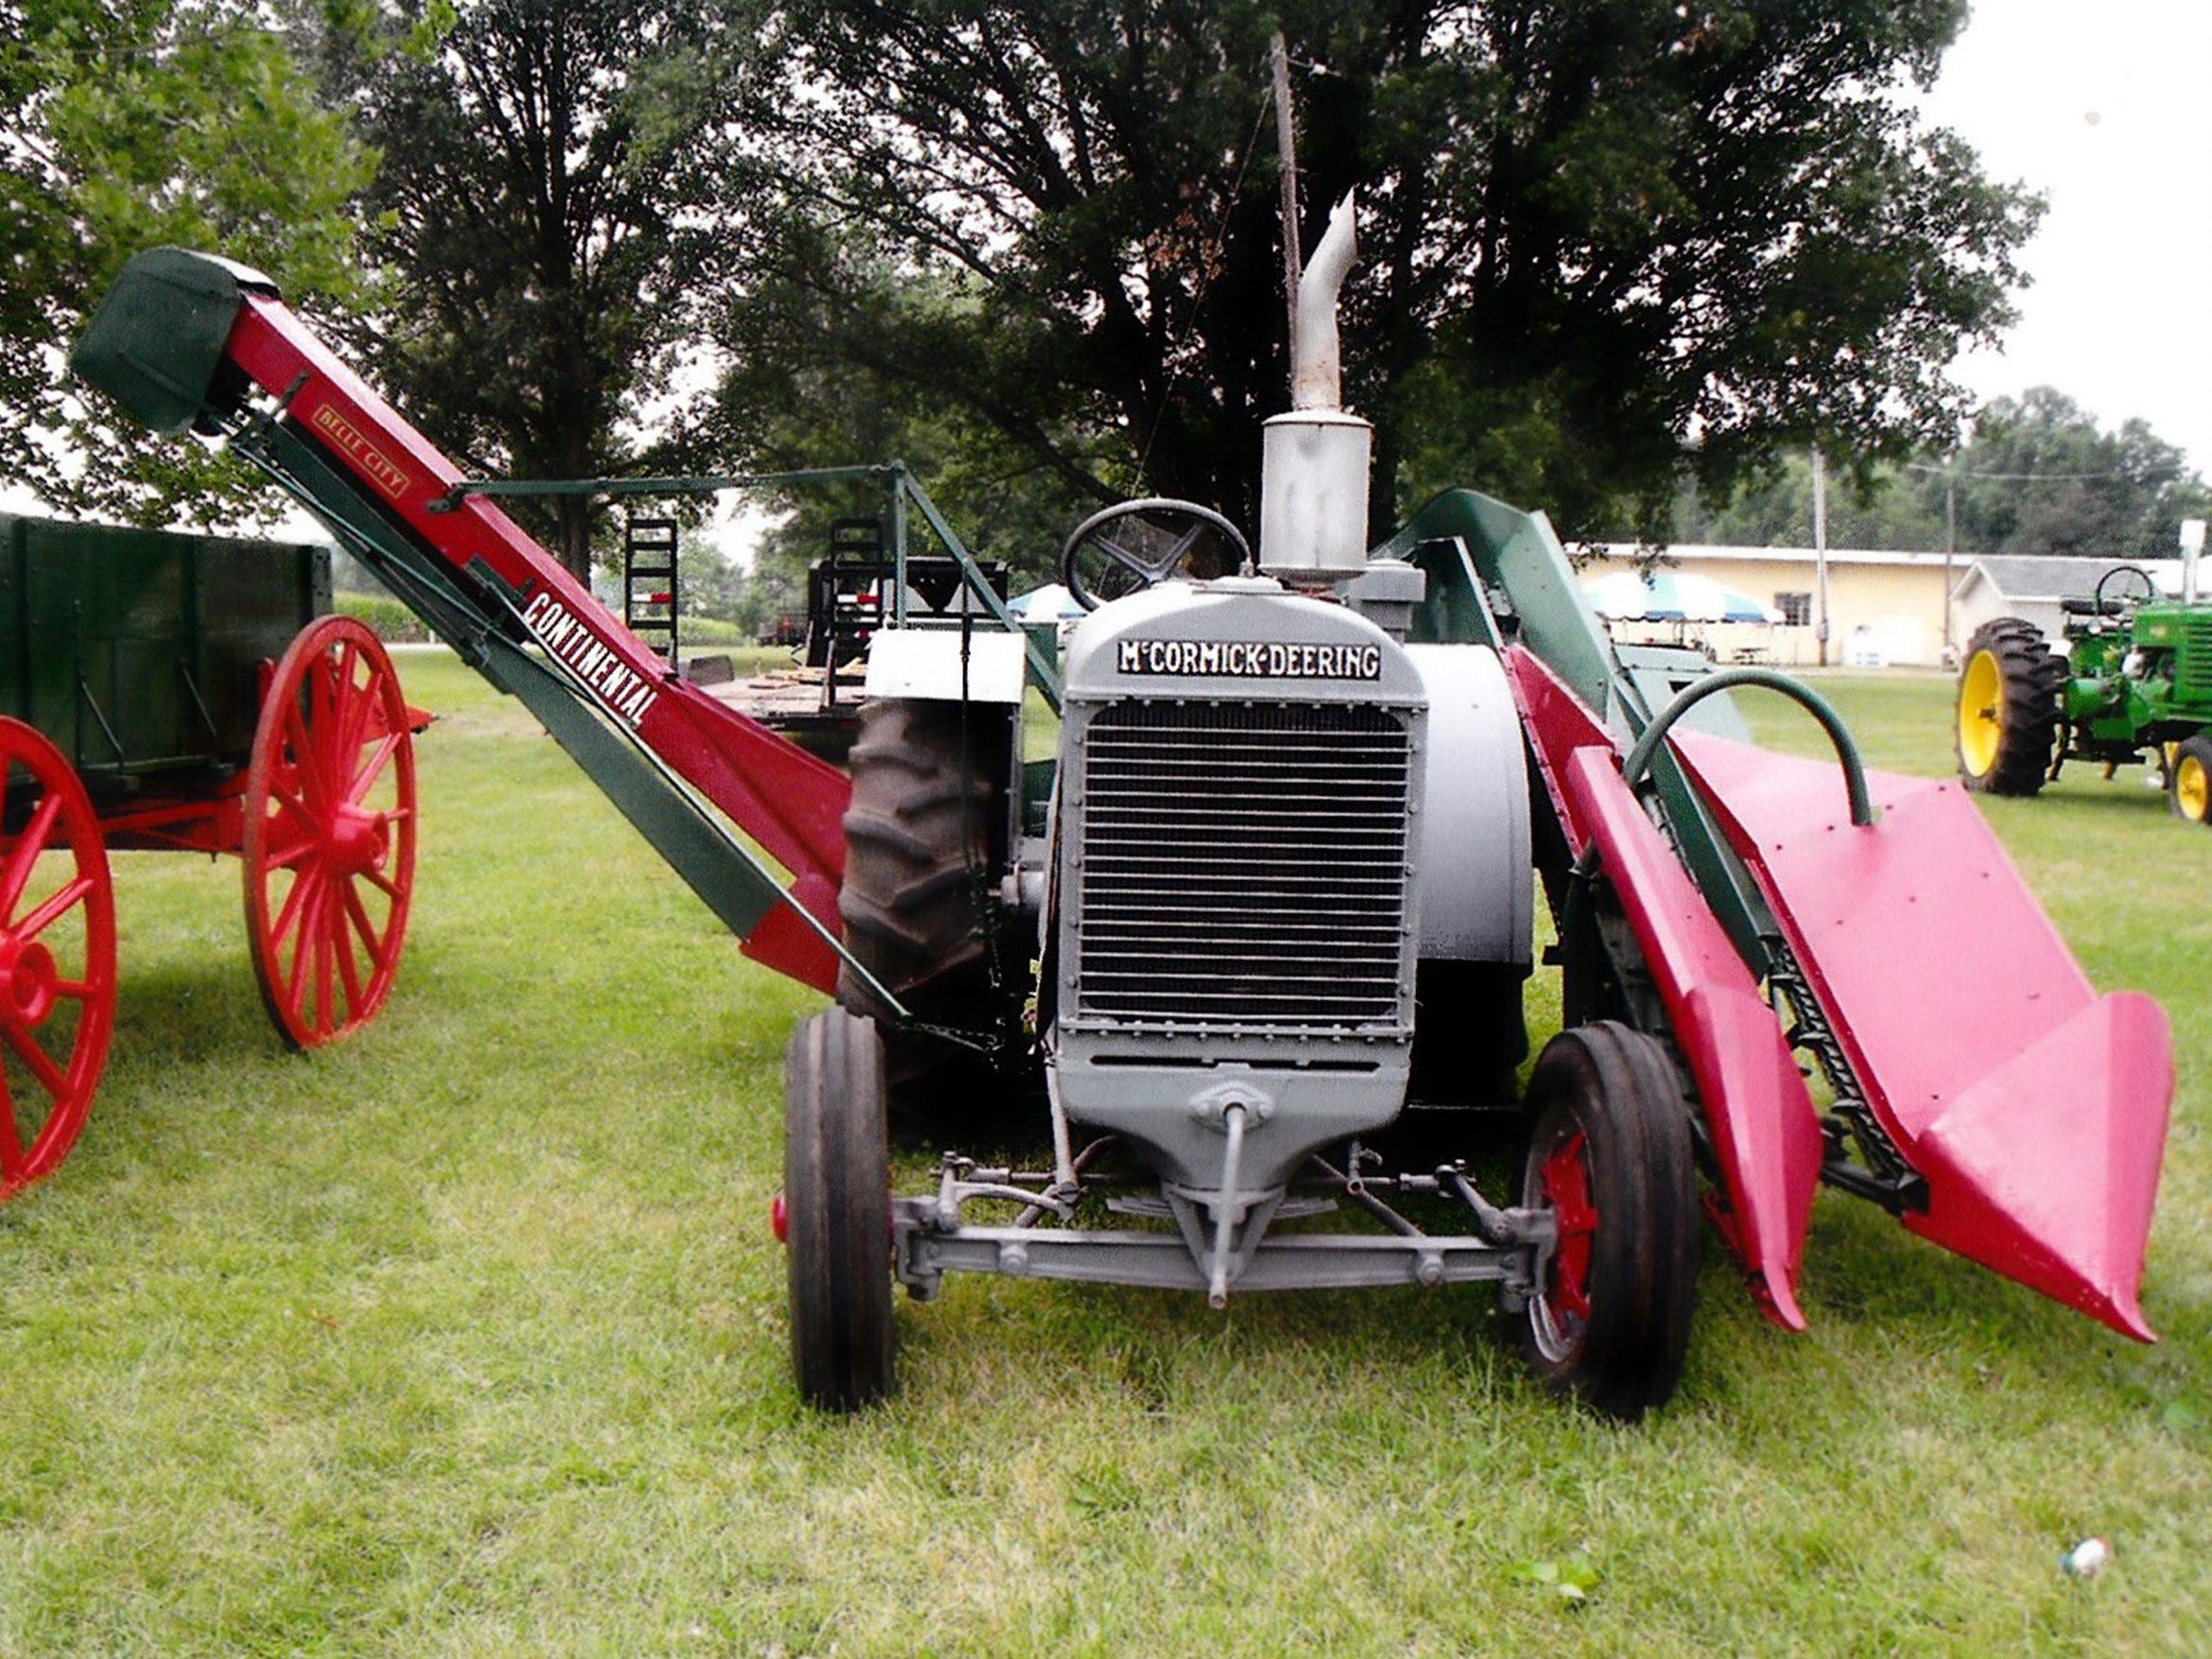 Three young men from DeKalb County, Illinois, invented the first way to mount a picker directly onto a tractor, which they sold to Continental Cultor in Ohio. The manufacturing rights of the Continental Corn Picker, originally built in Ohio, was bought in 1930 by the Belle City Mfg. Co. in Racine. Francis McGrady of Indiana provided this photo of his restored rare Continental.